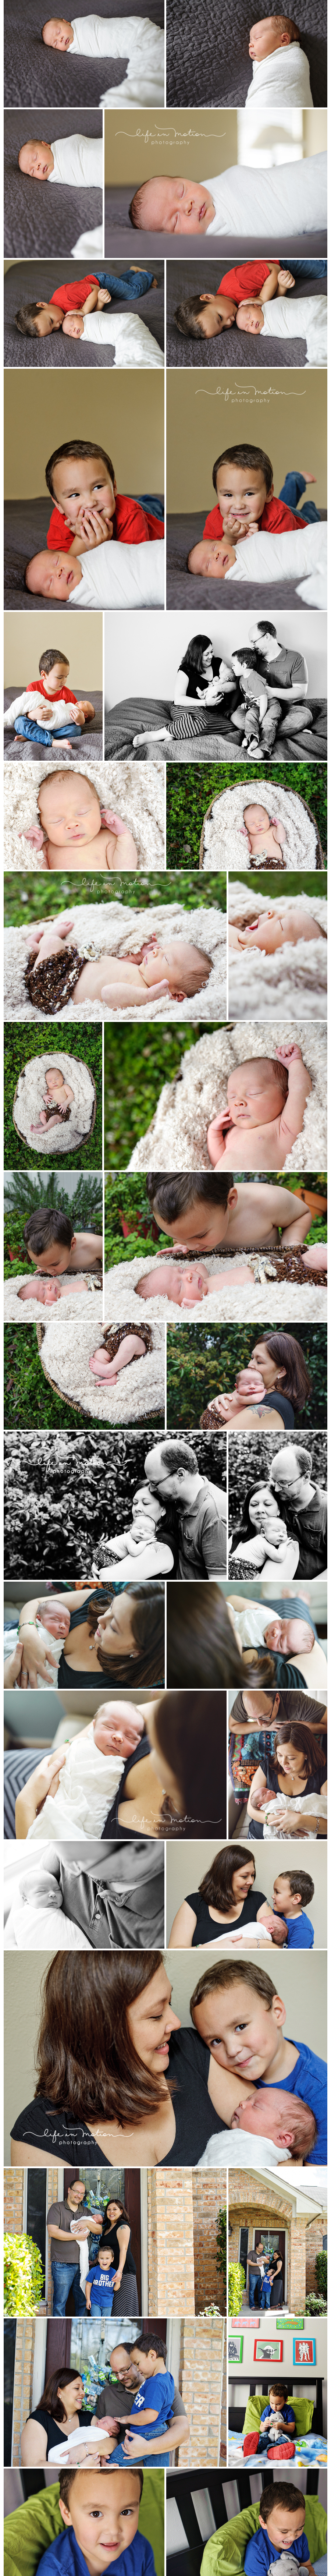 austin_family_newborn_photographers